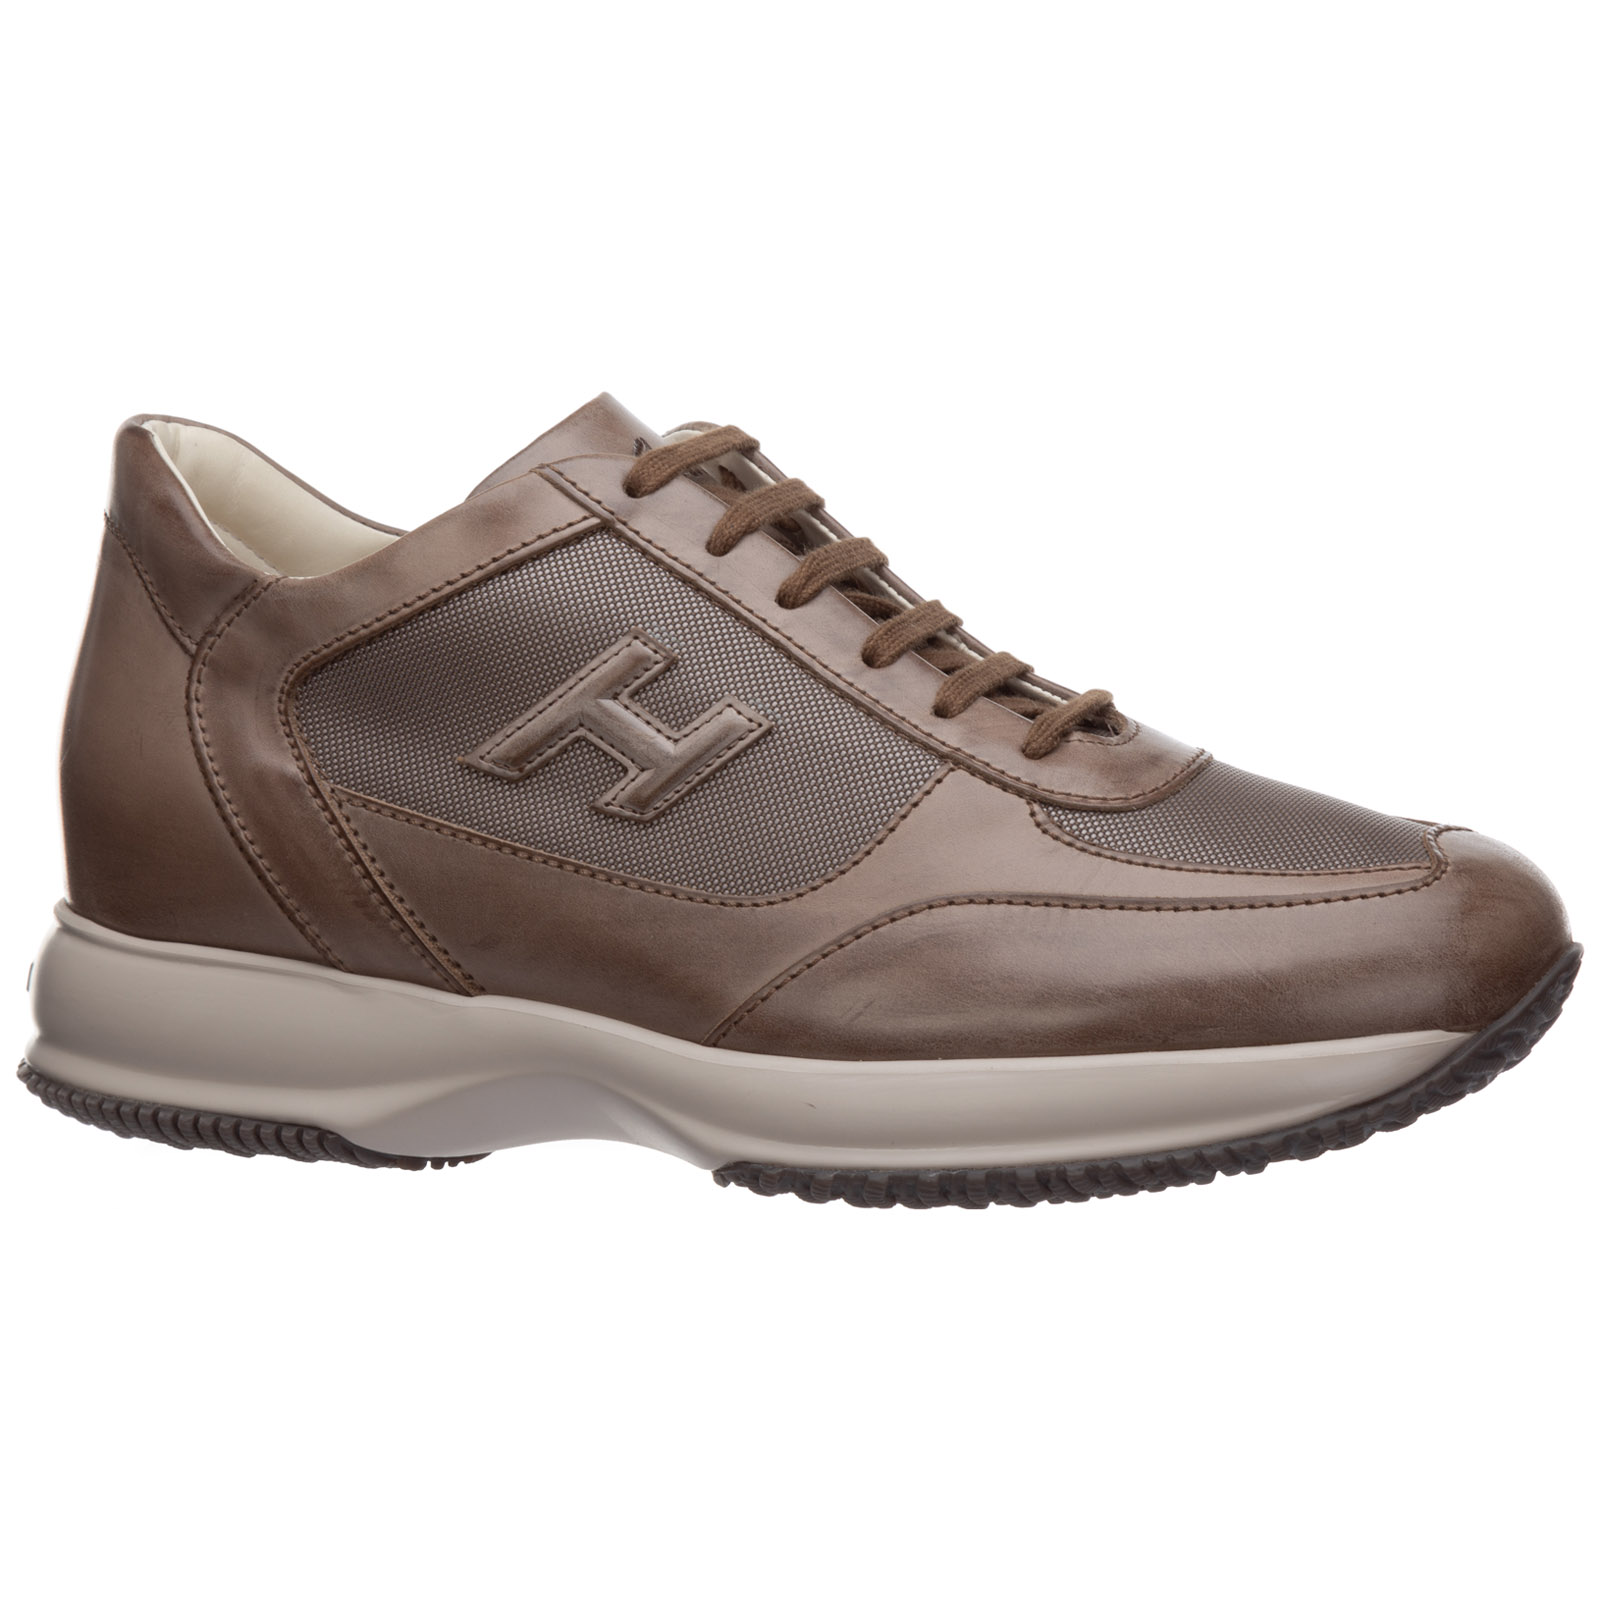 Men's shoes leather trainers sneakers interactive h3d